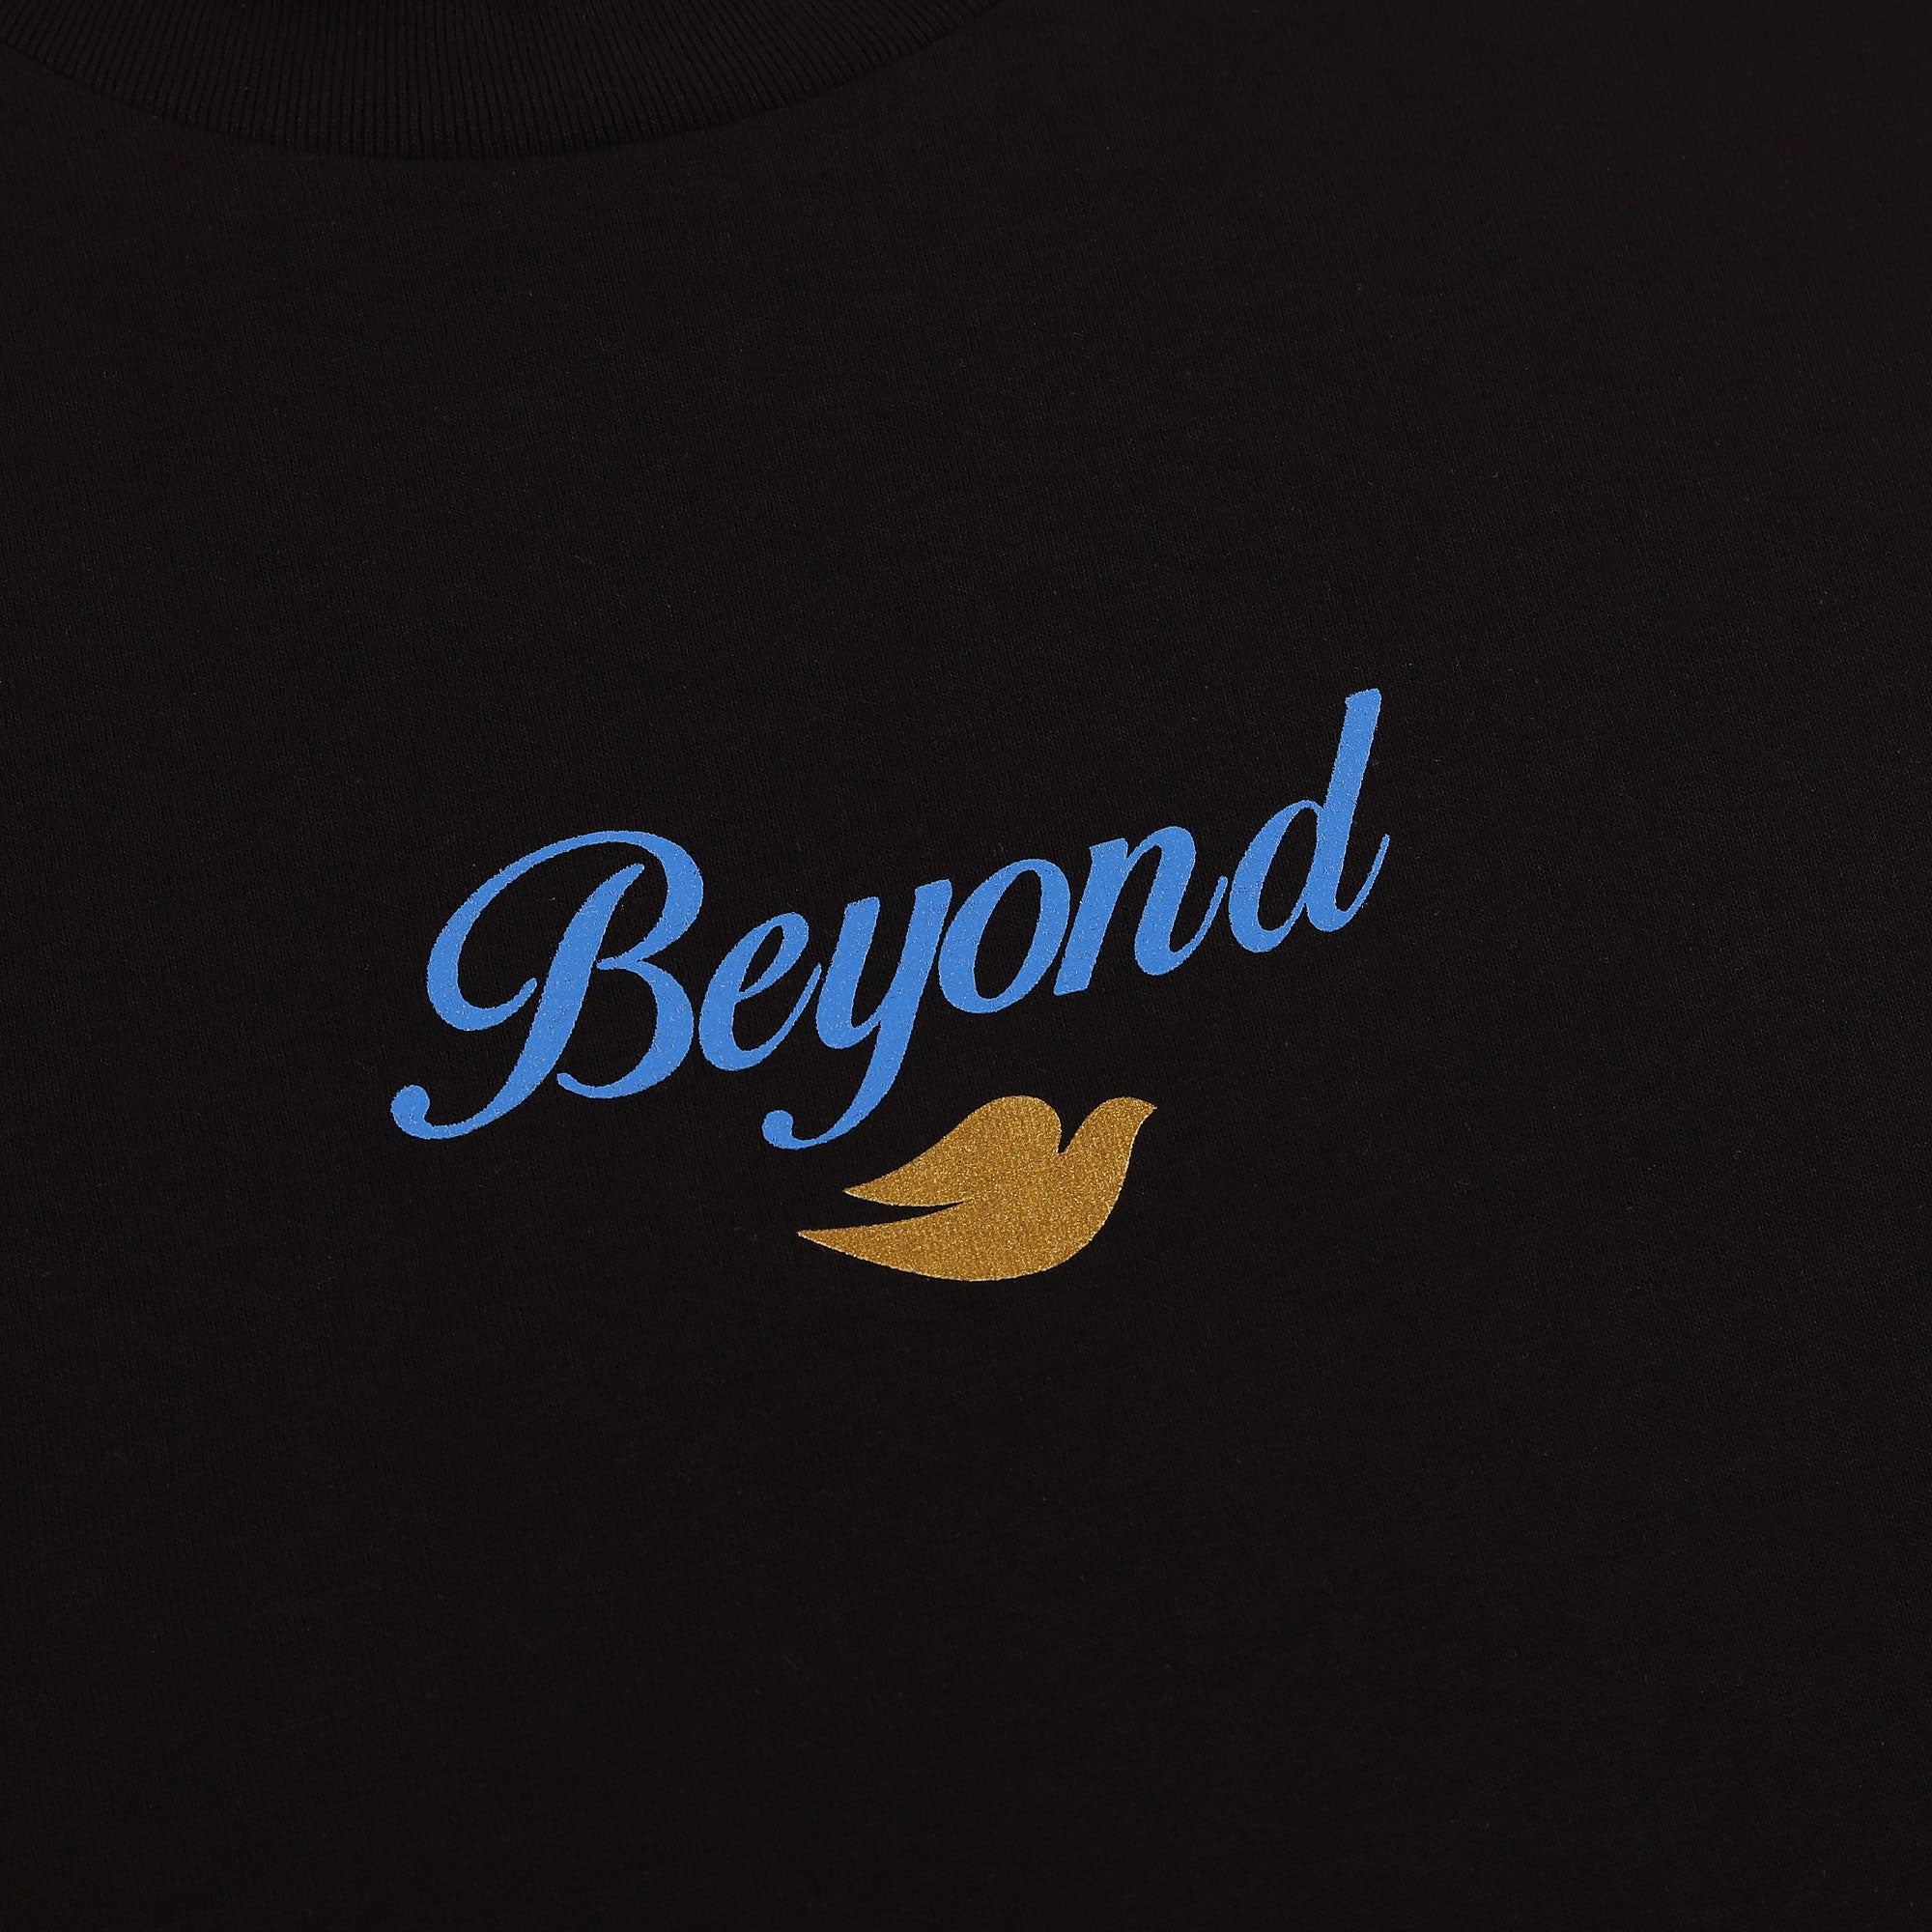 Beyond Soapy Tee Product Photo #2